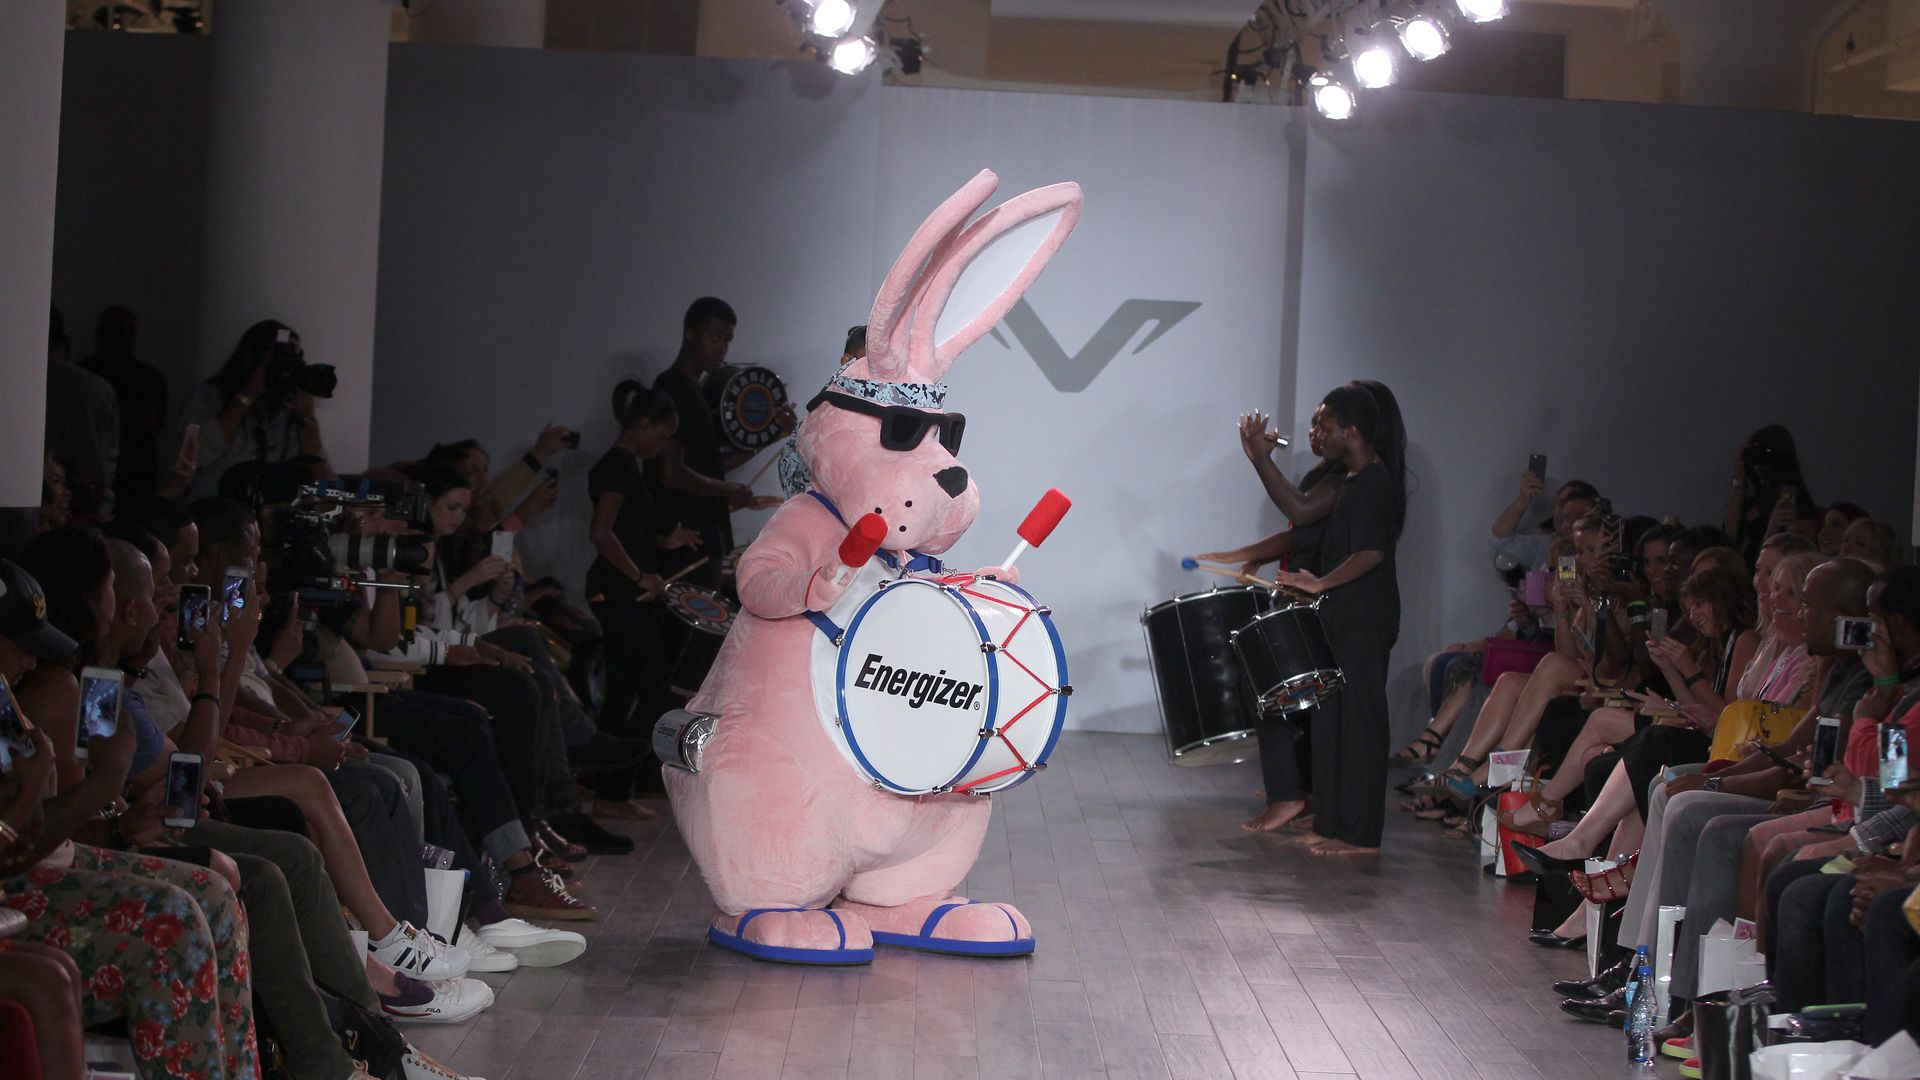 The Energizer Bunny at a fashion show.